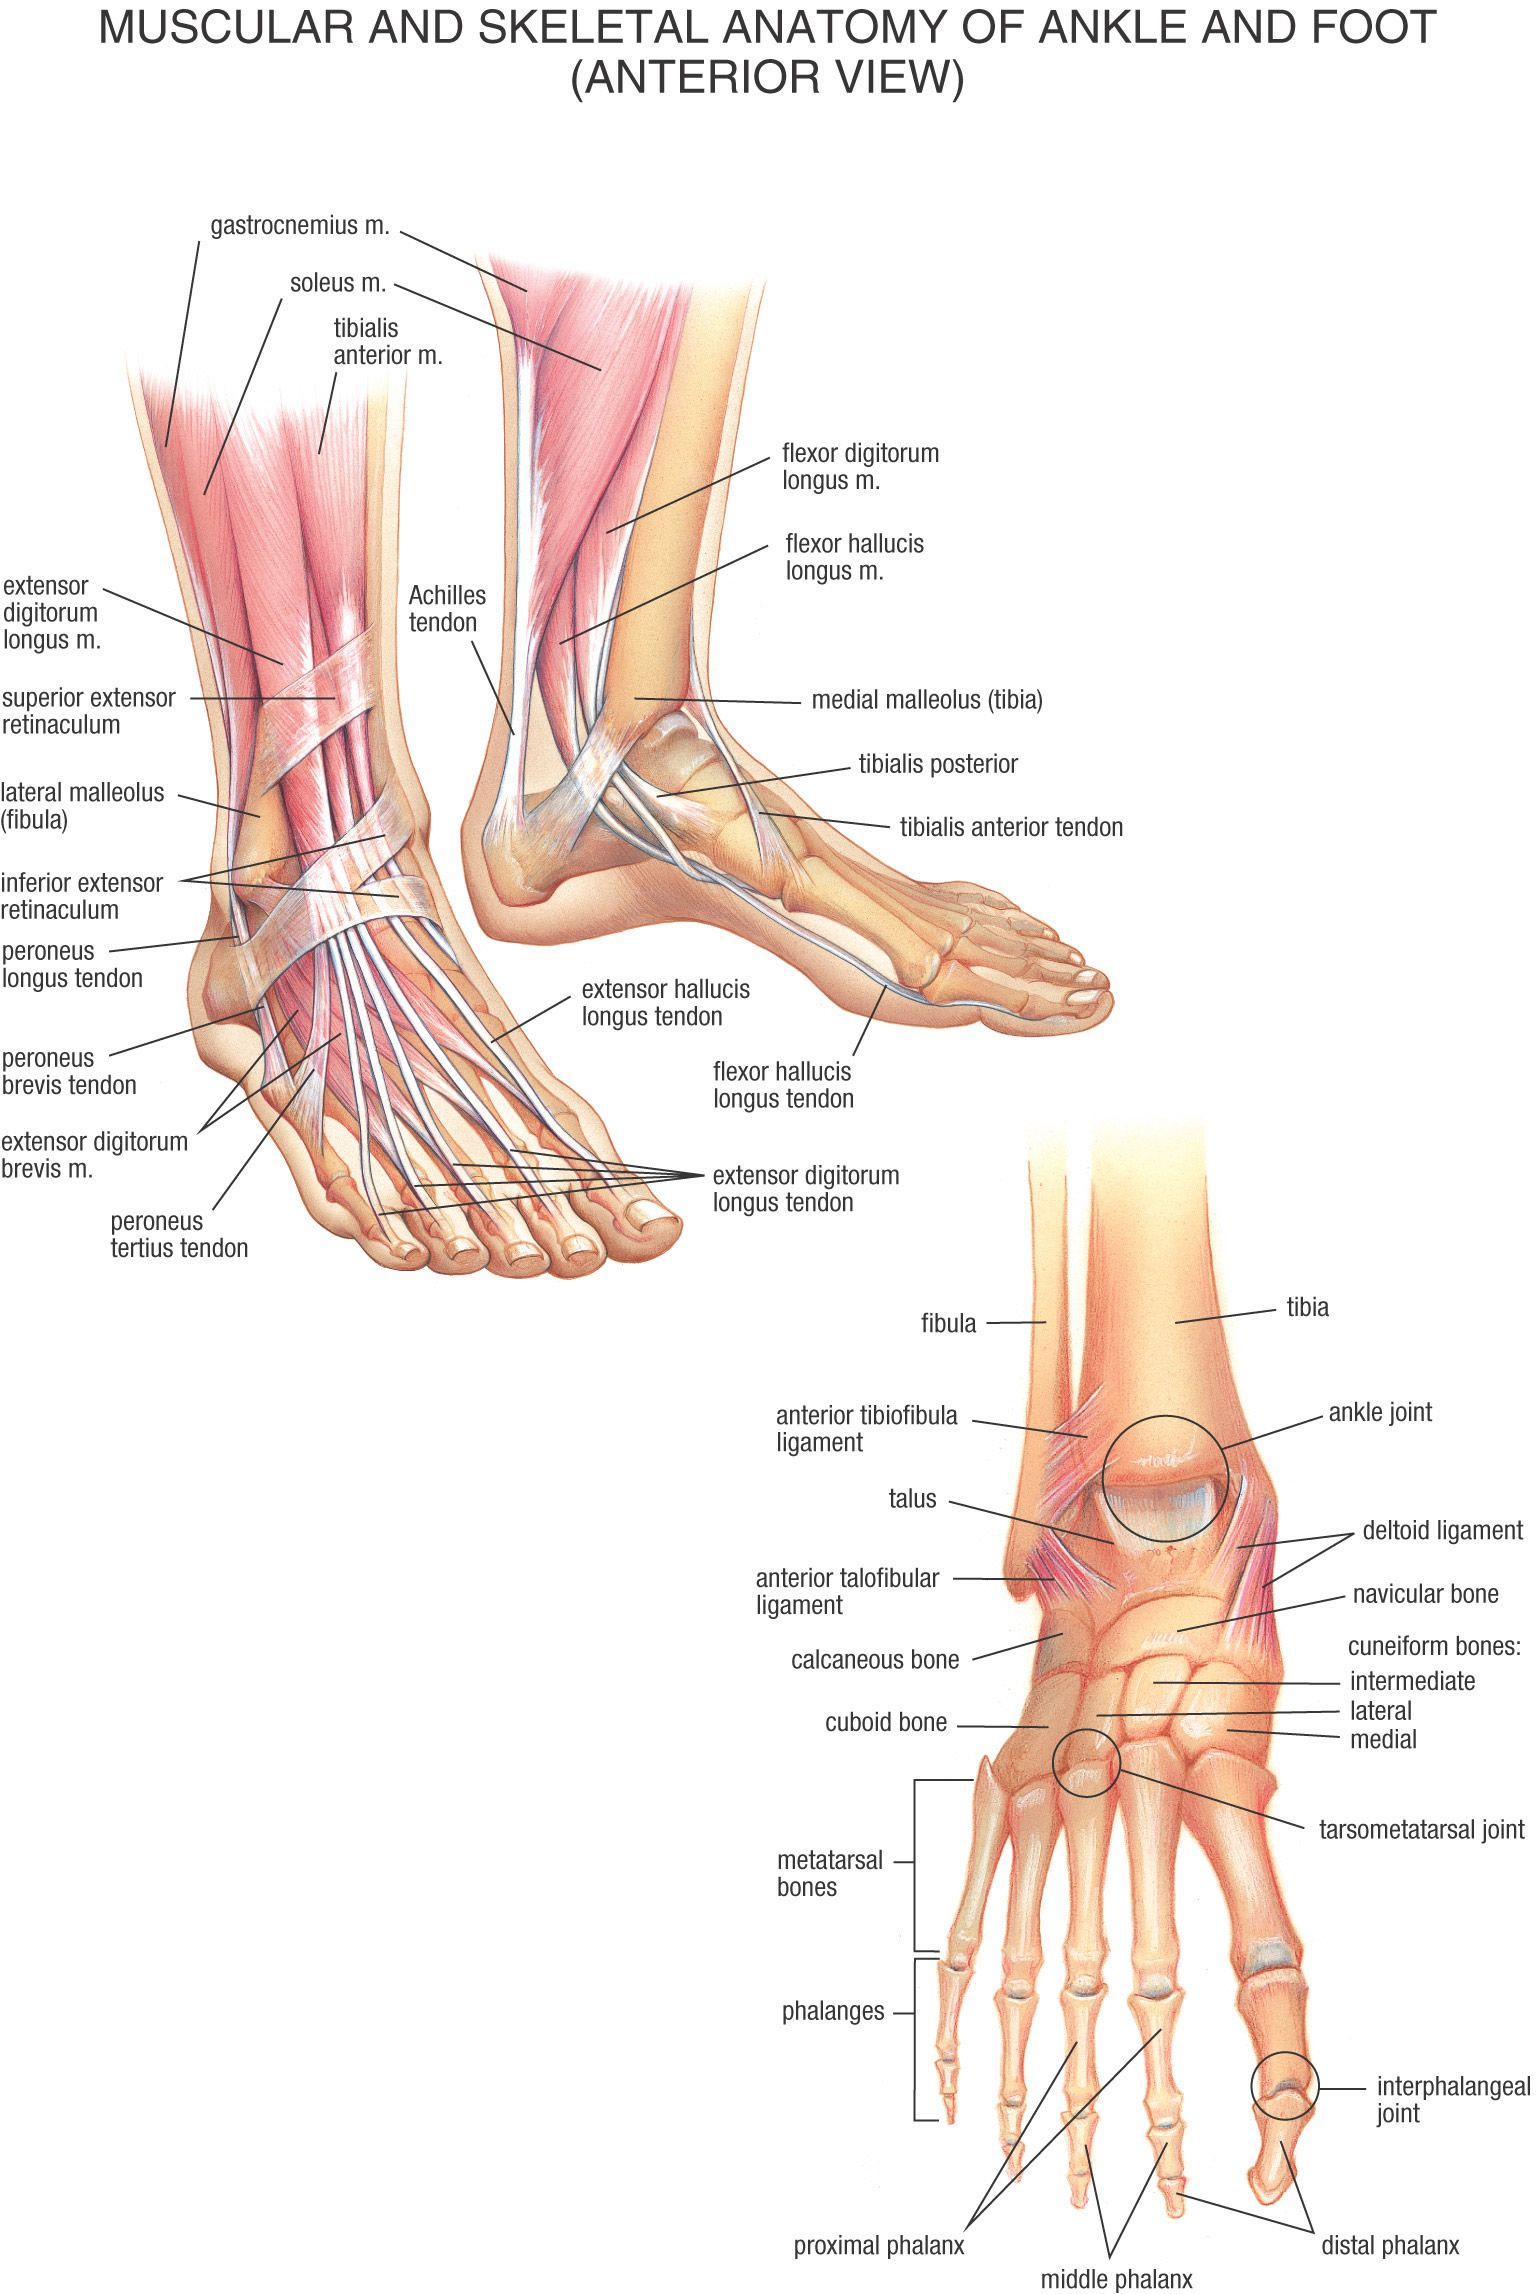 fysiurgisk massør | tag hånd om din krop | foot anatomy, body anatomy,  muscle anatomy  pinterest